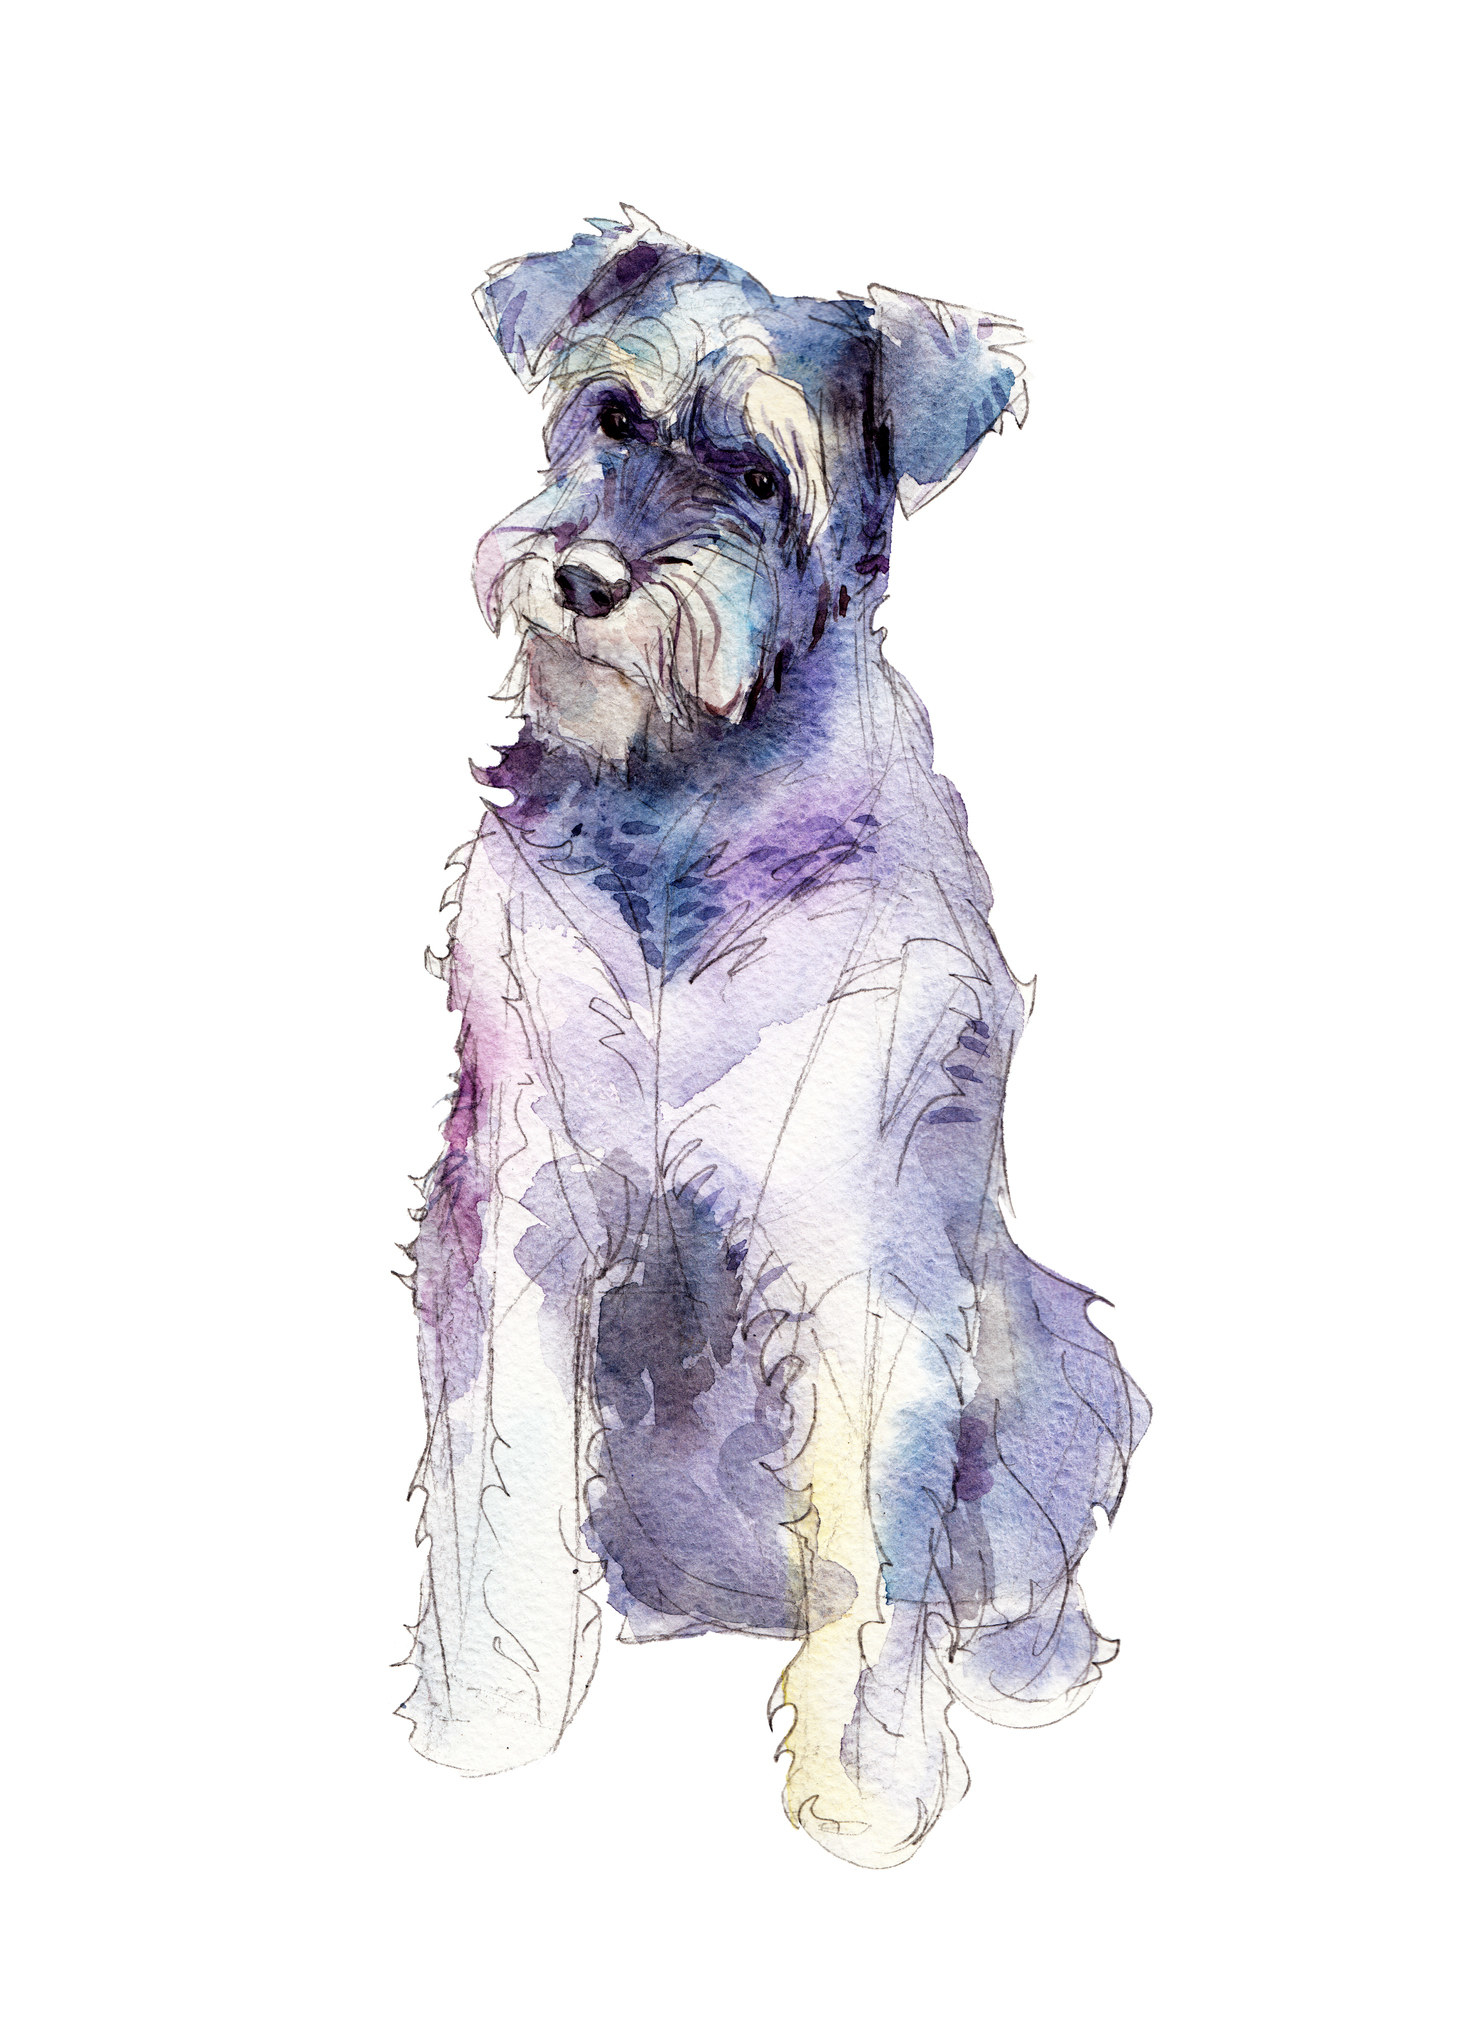 Water color painting of a Schnauzer